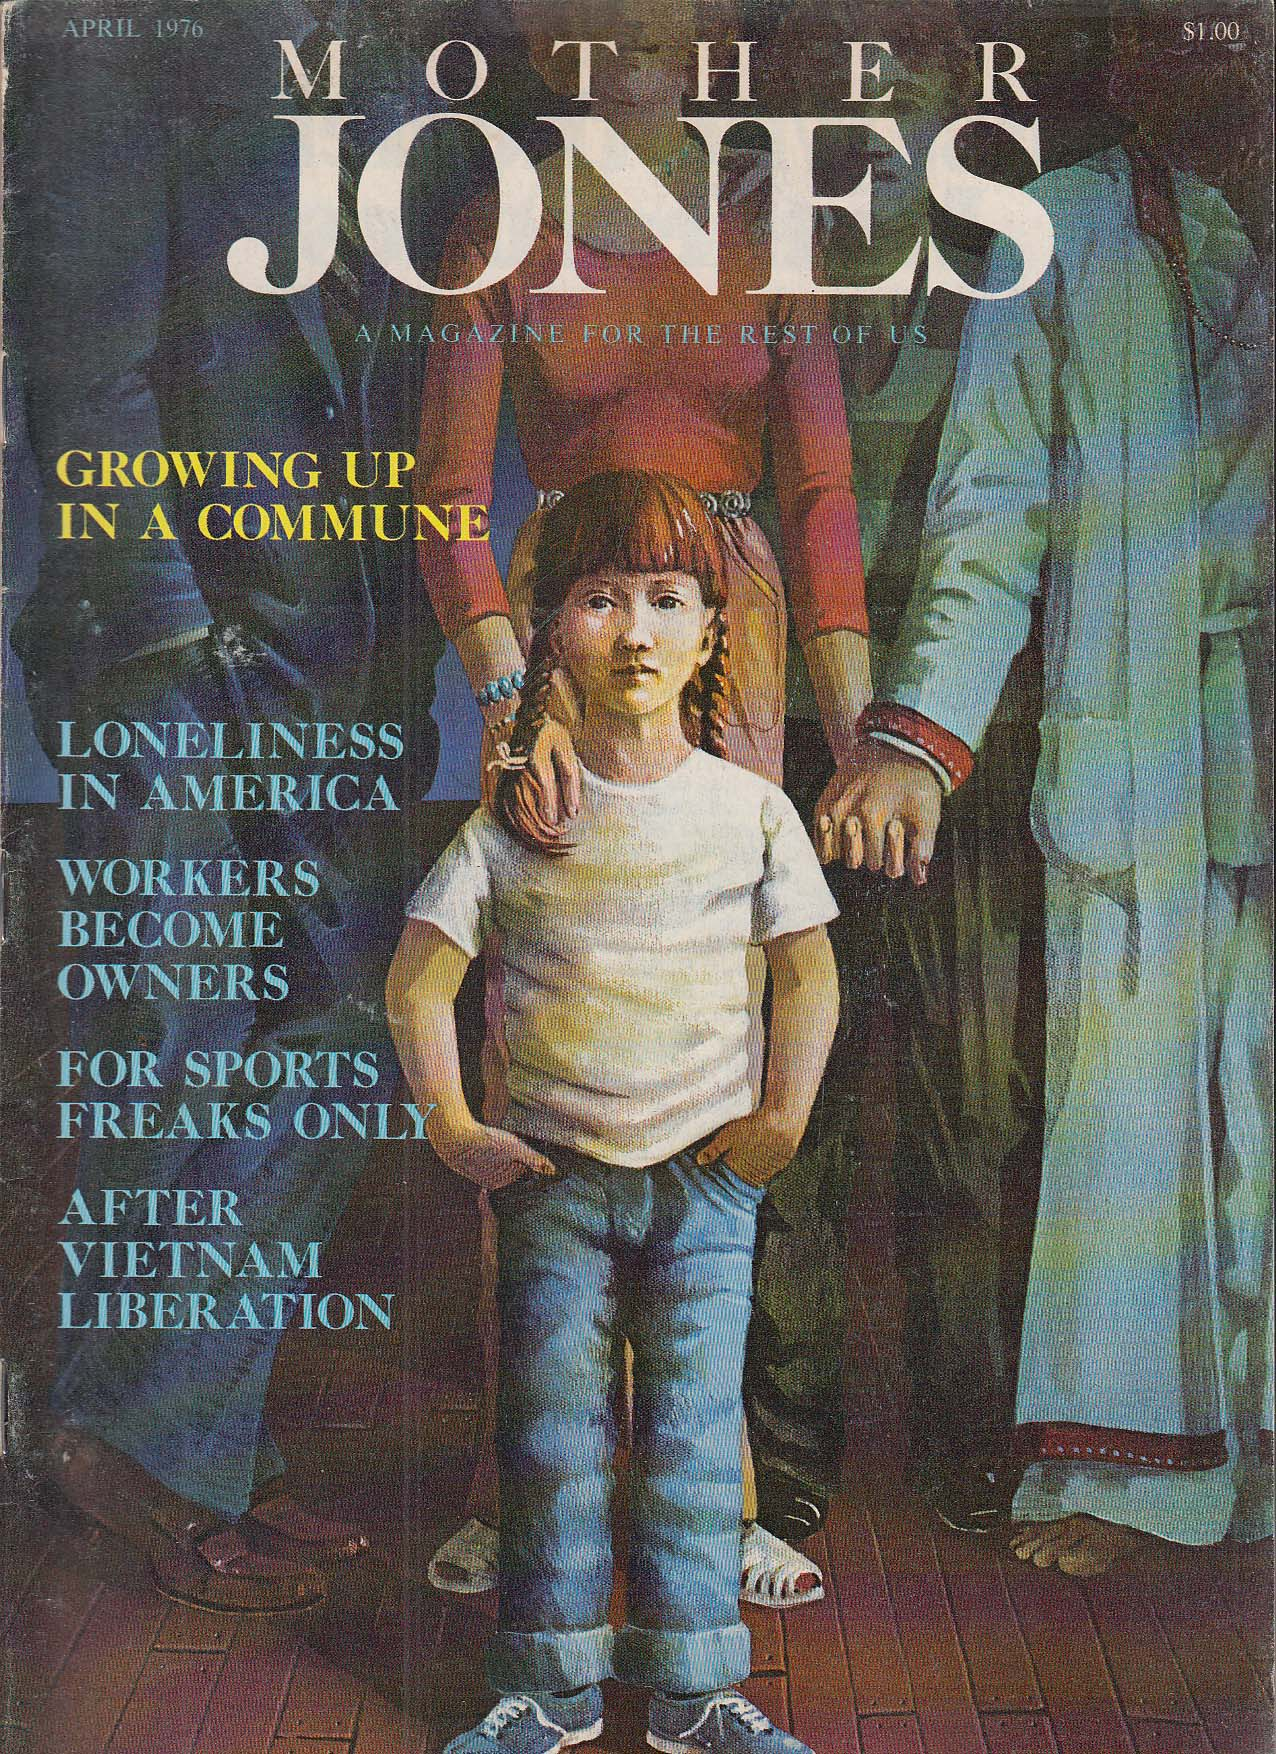 Image for MOTHER JONES #2 After Vietnam Liberation 4 1976